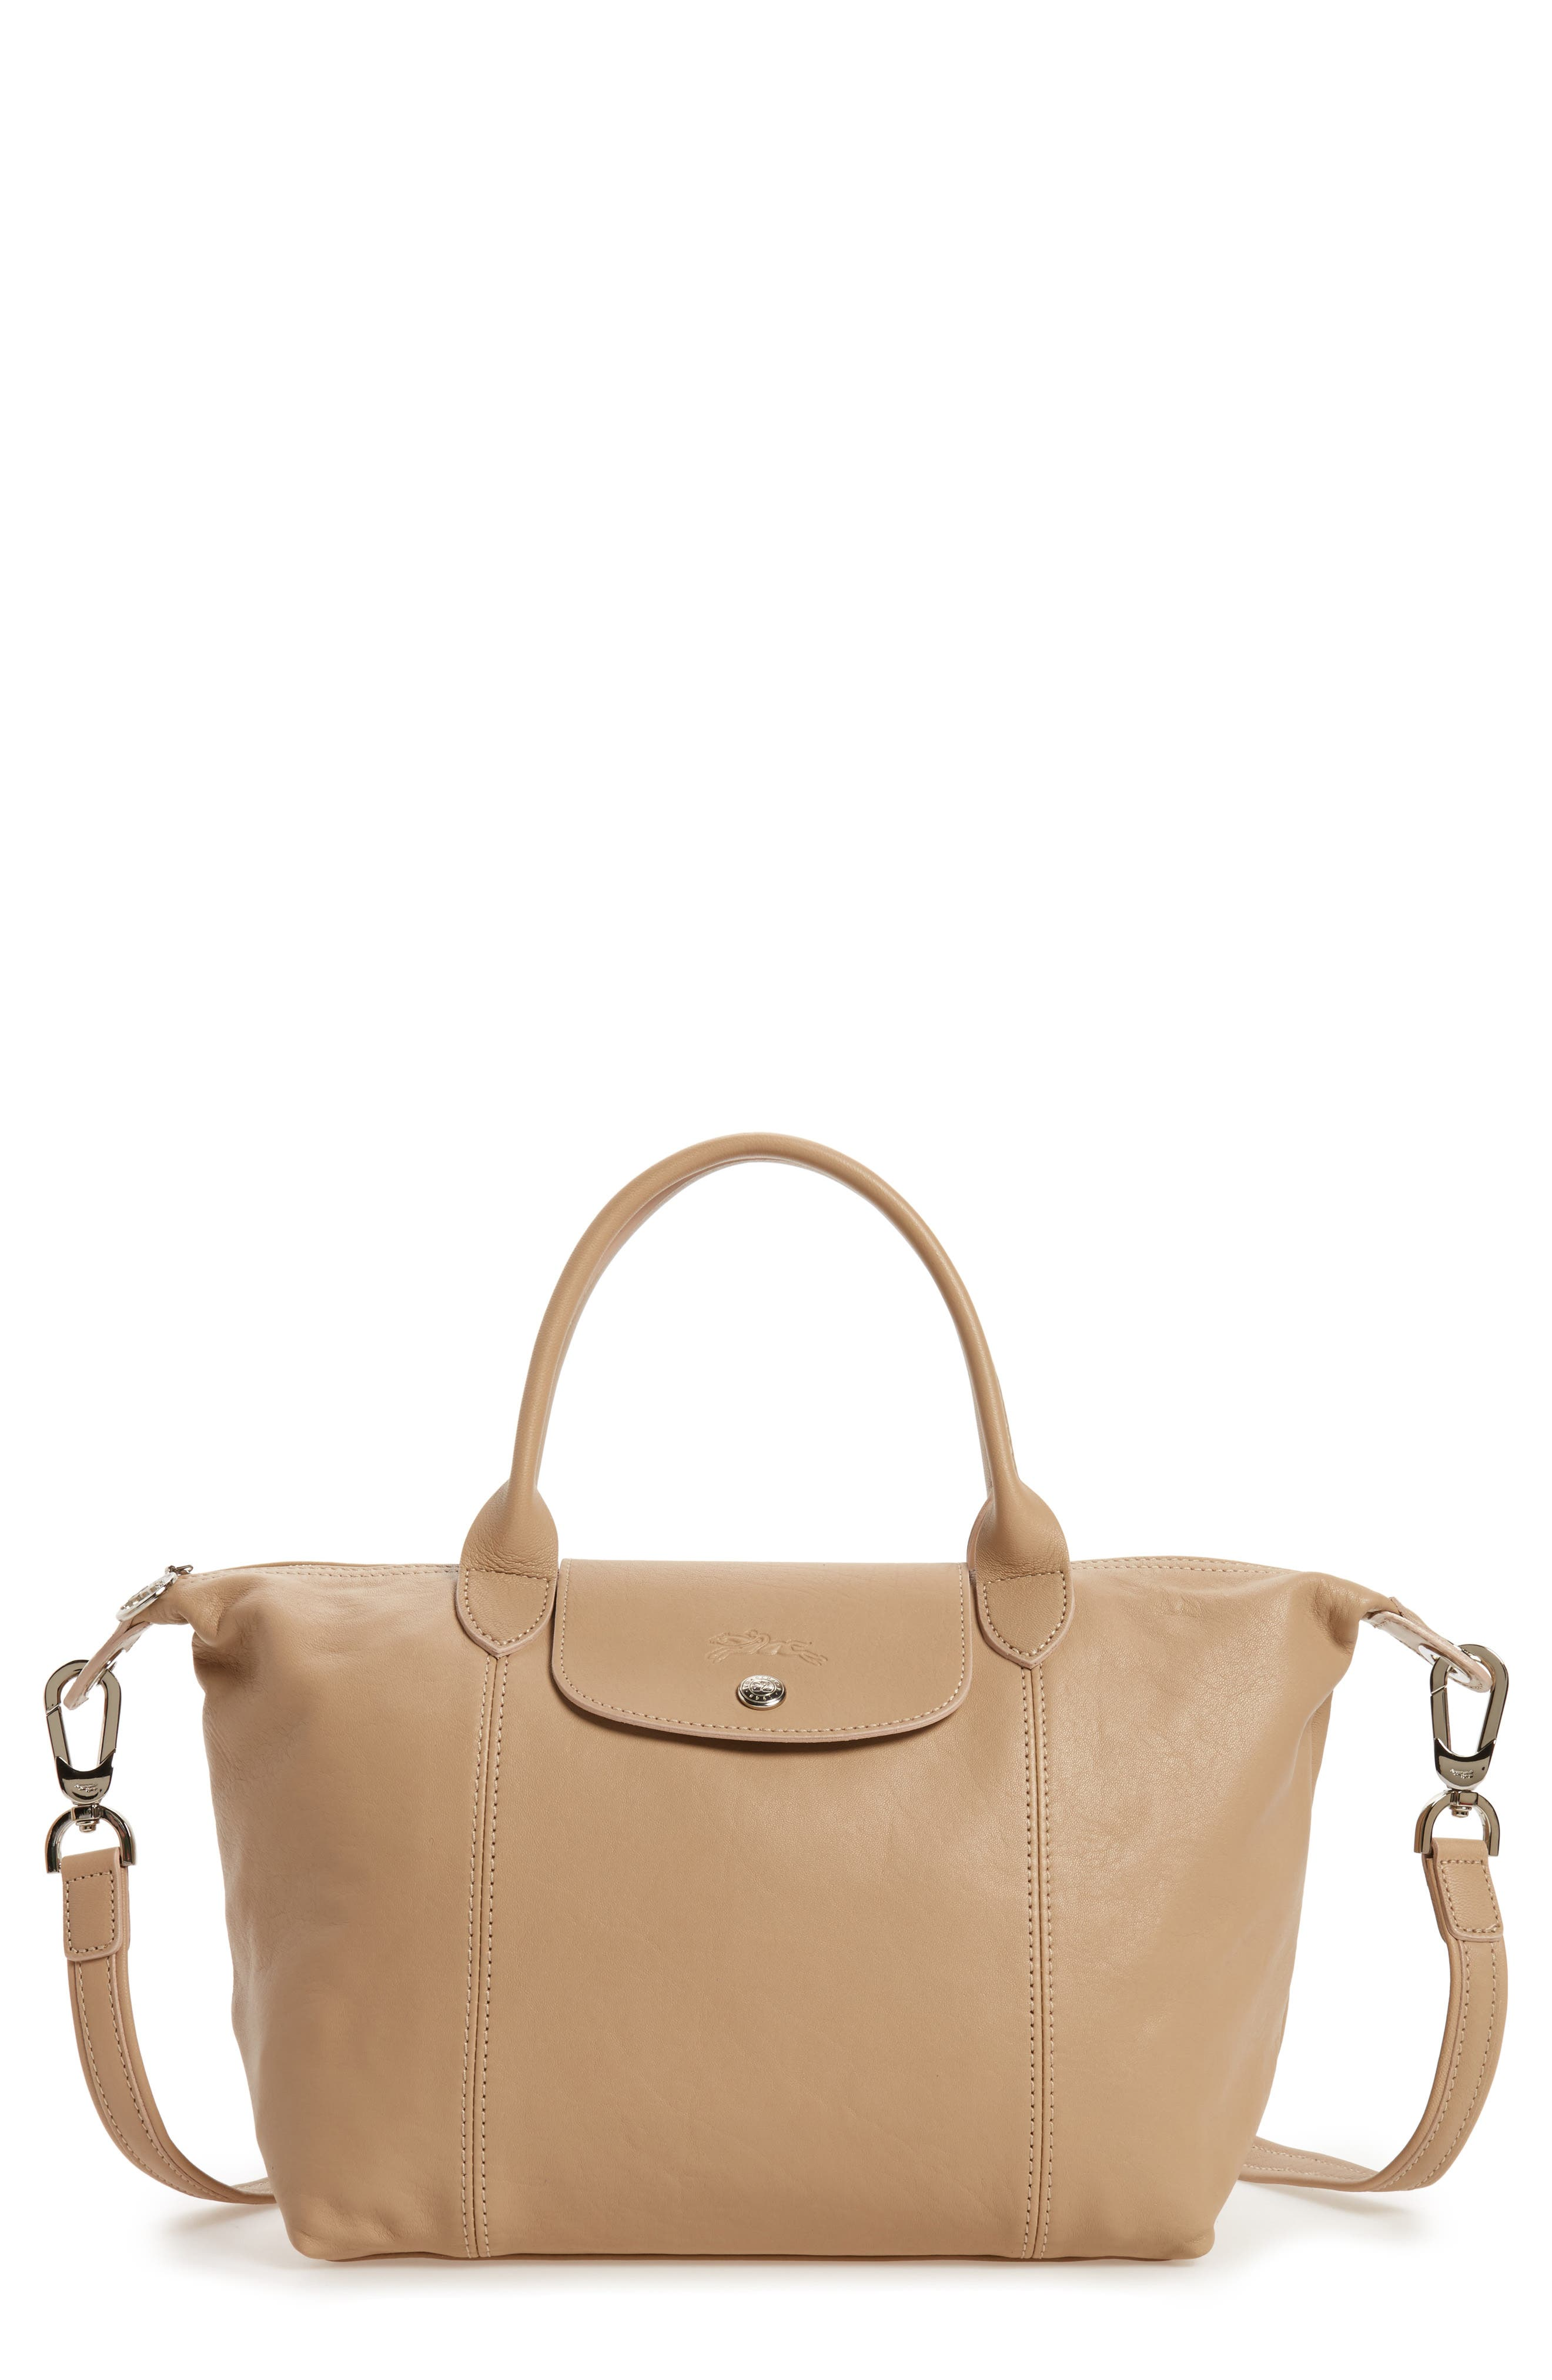 Small 'Le Pliage Cuir' Leather Top Handle Tote,                             Main thumbnail 6, color,